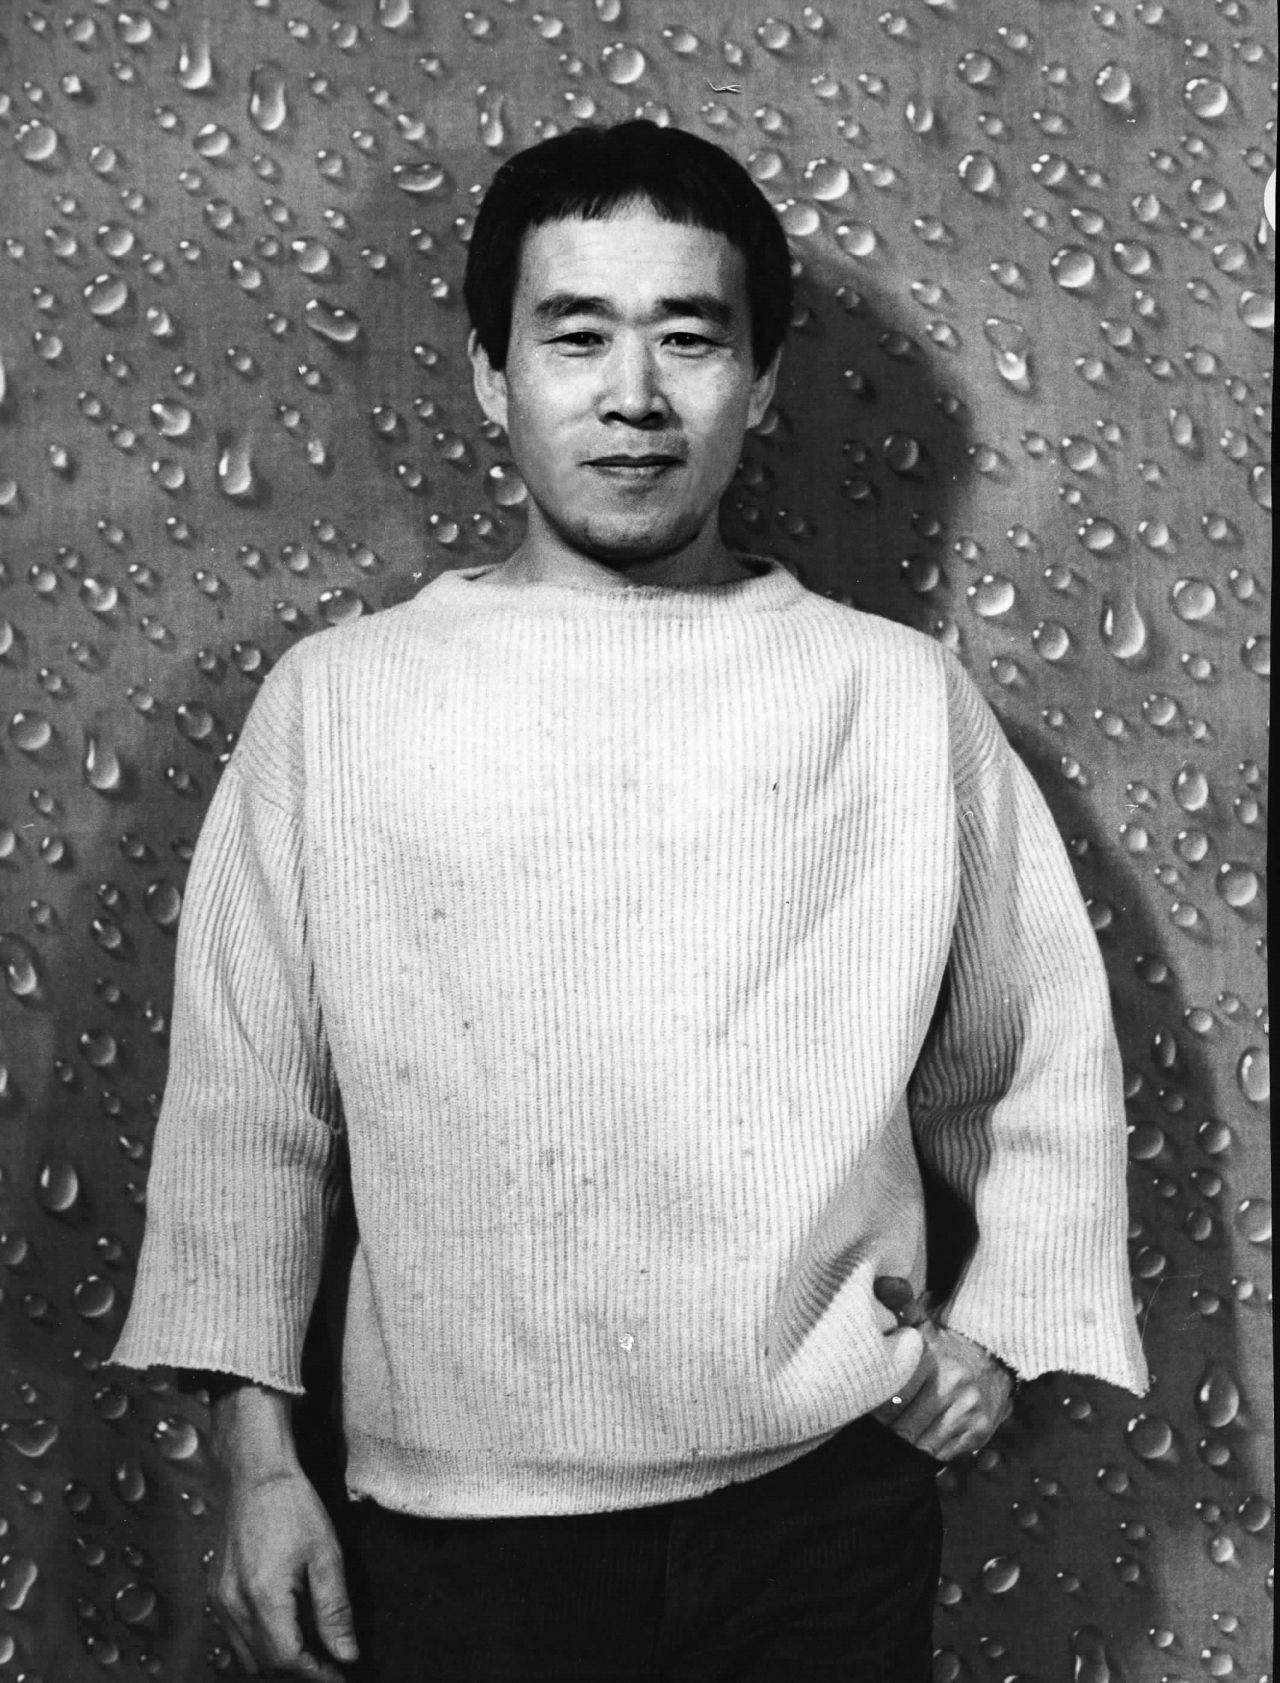 A photo of Kim Tschang-yeul from the 1970s (Gallery Hyundai)